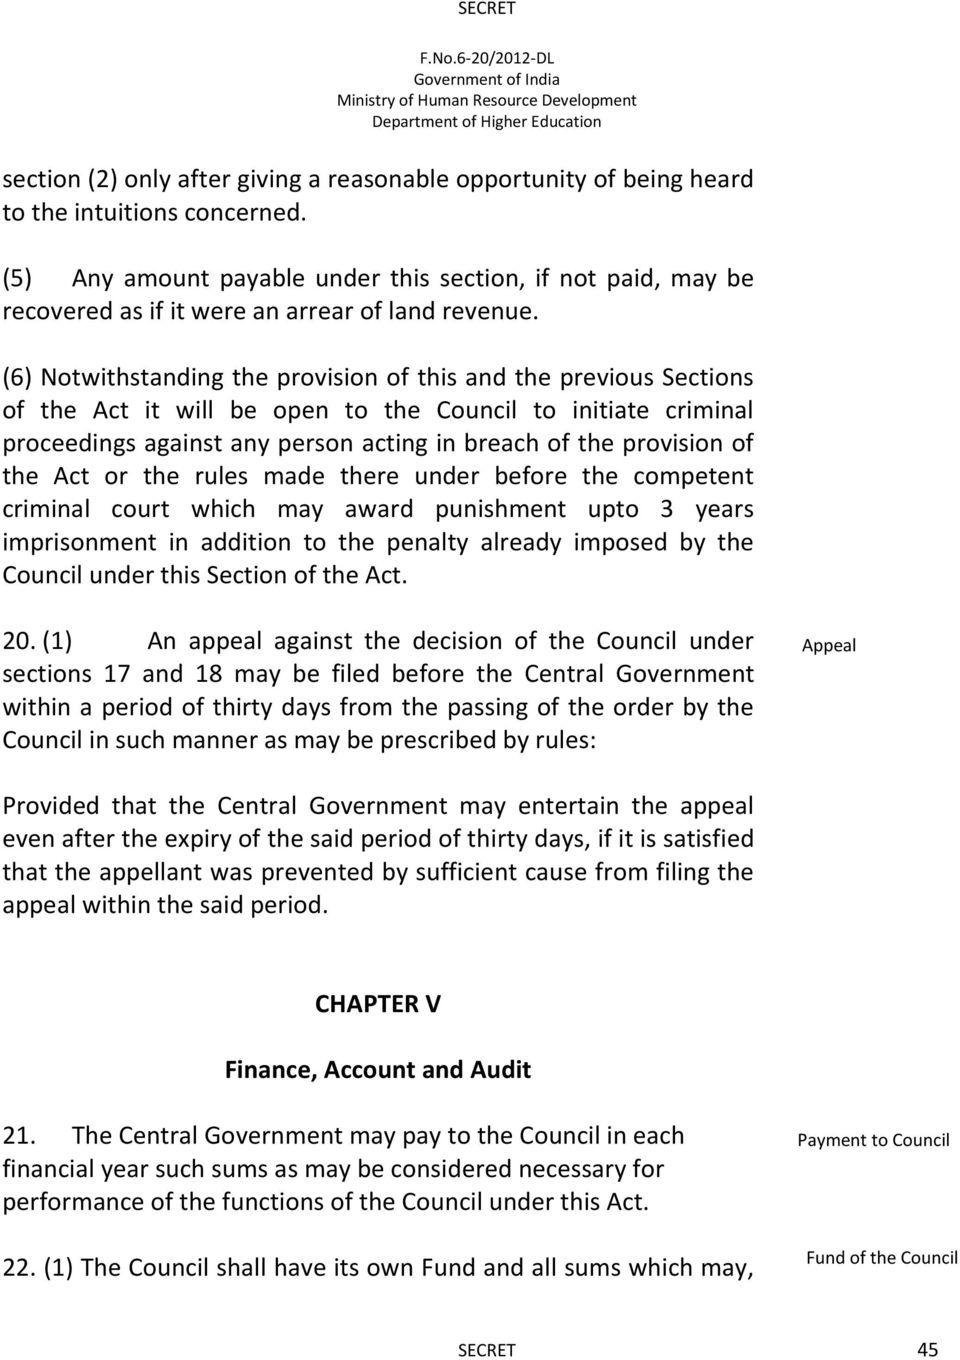 (6) Notwithstanding the provision of this and the previous Sections of the Act it will be open to the Council to initiate criminal proceedings against any person acting in breach of the provision of